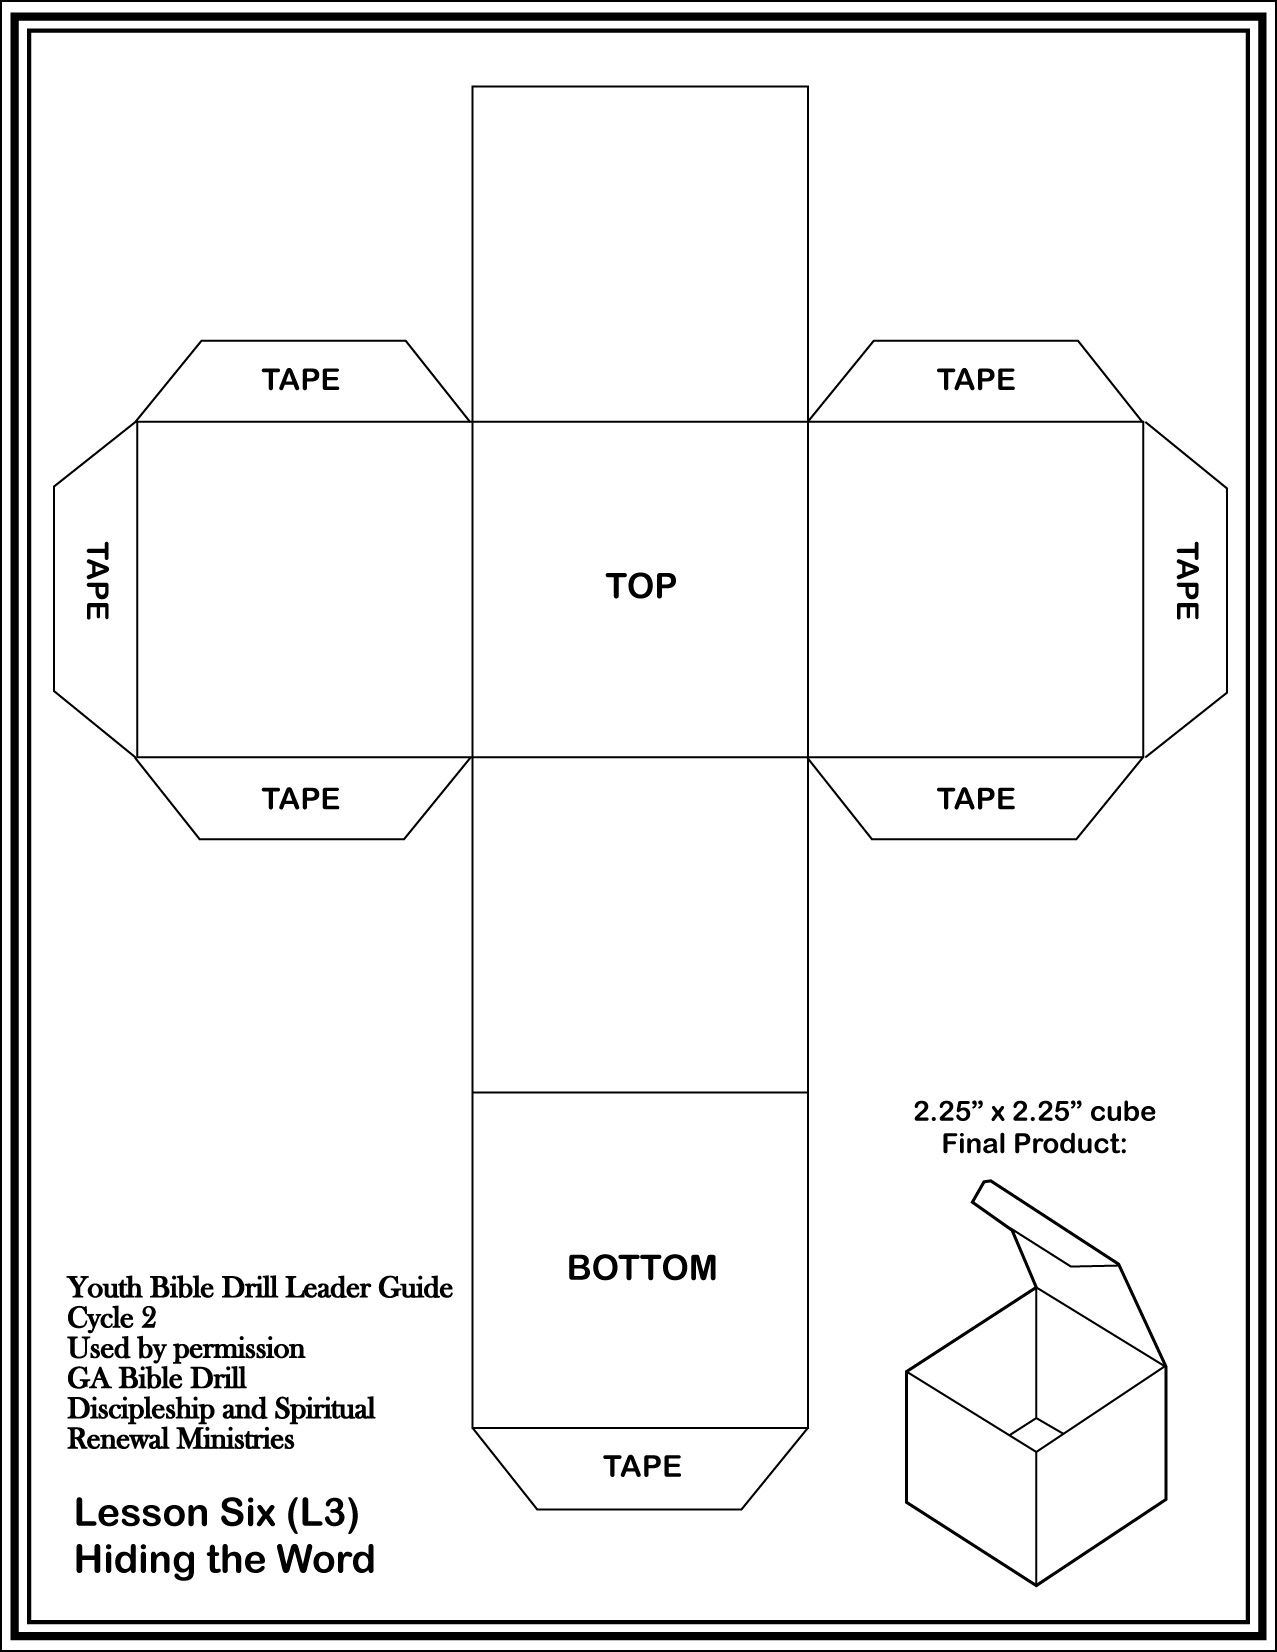 Download And Print Off The Cube Template On Cardstock And